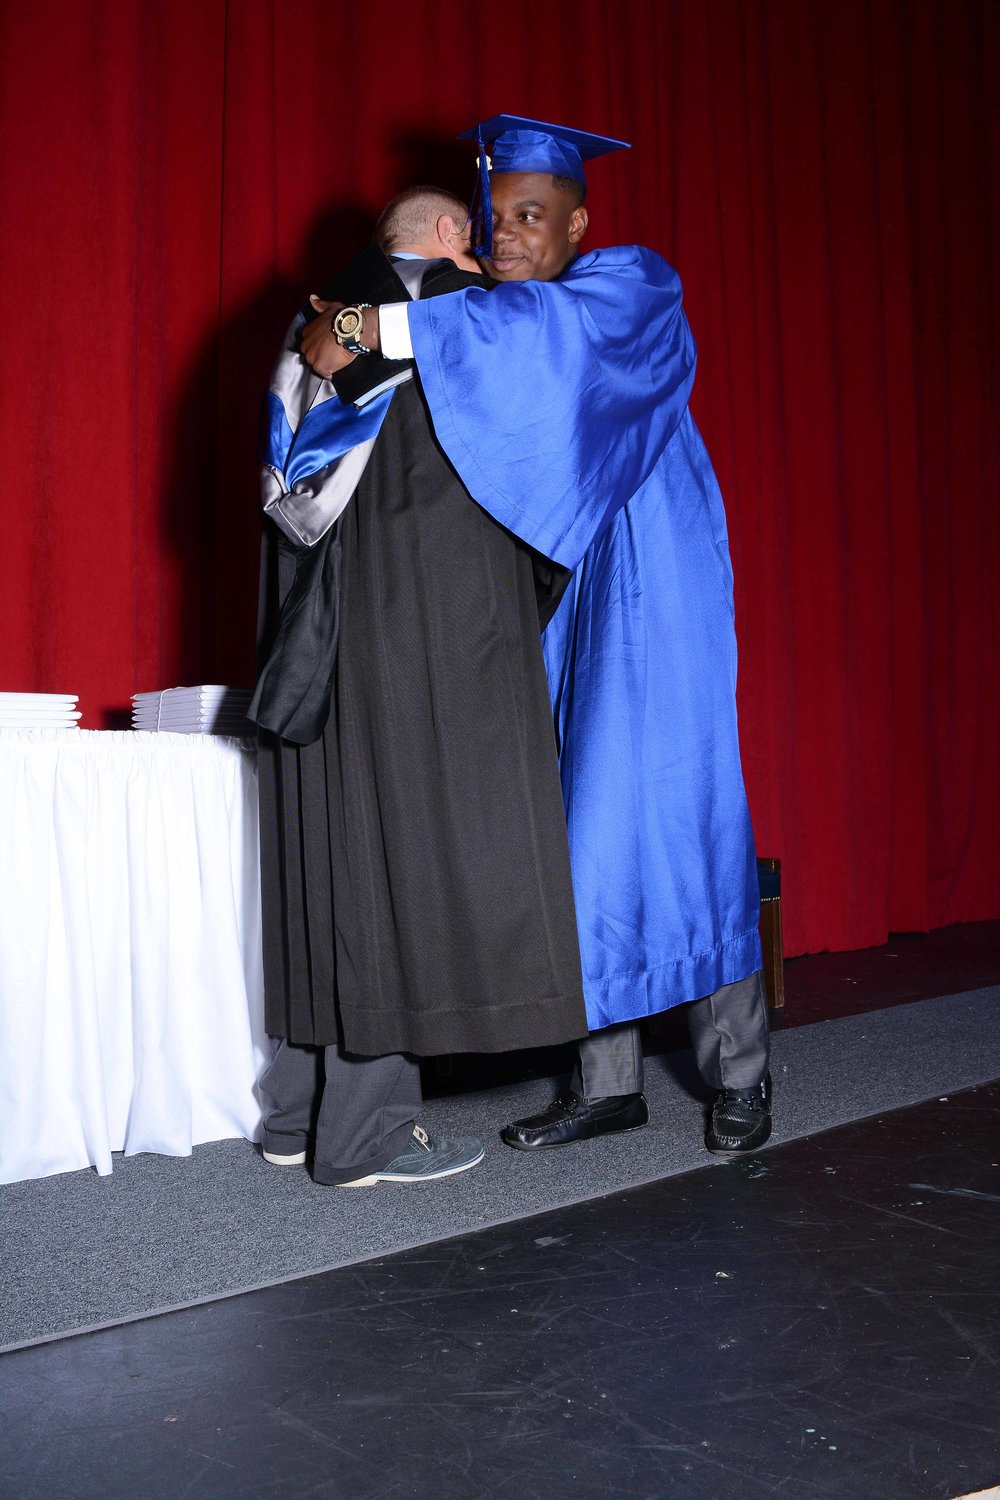 May14 Commencement157.jpg